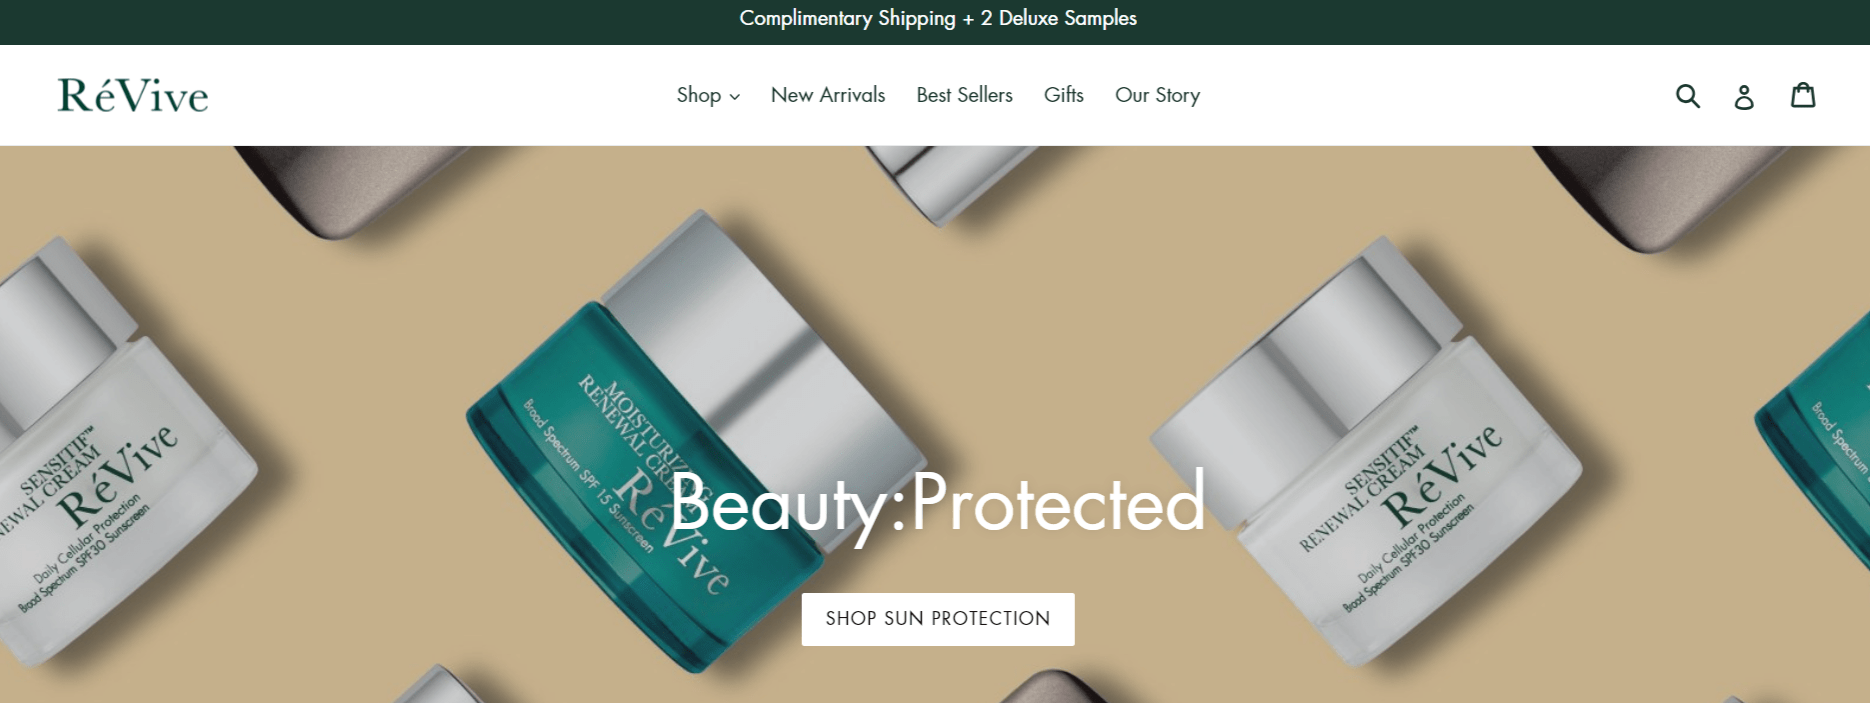 ReVive Skin Care Coupon Codes- The Best Beauty Coupon